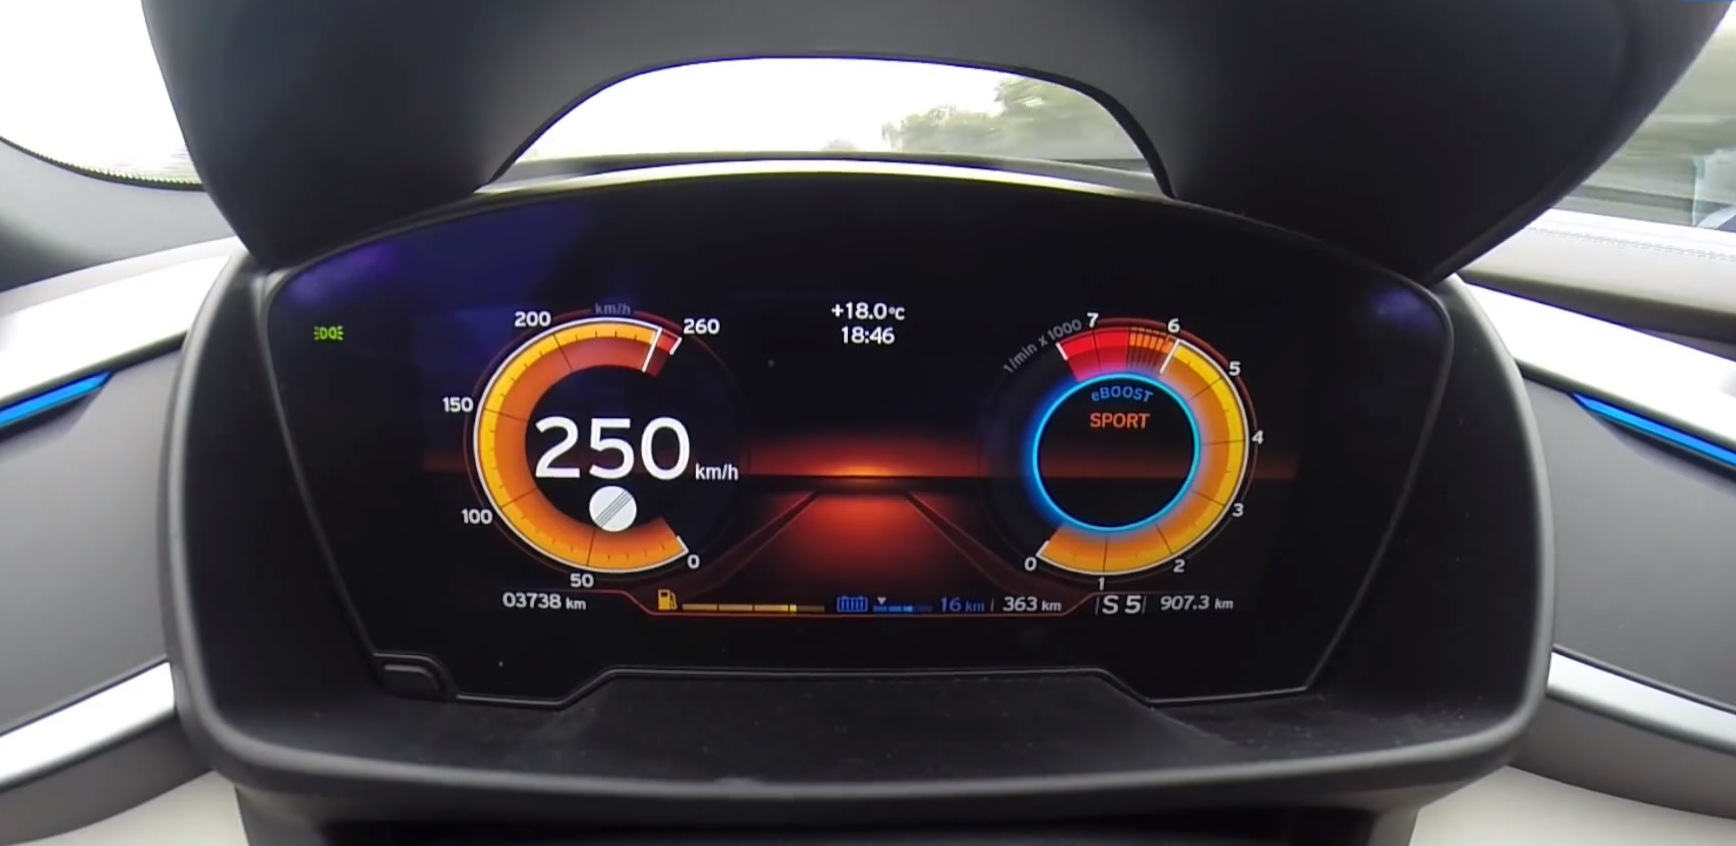 Join Us Behind The Wheel Of An I8 As It Reaches Top Speed